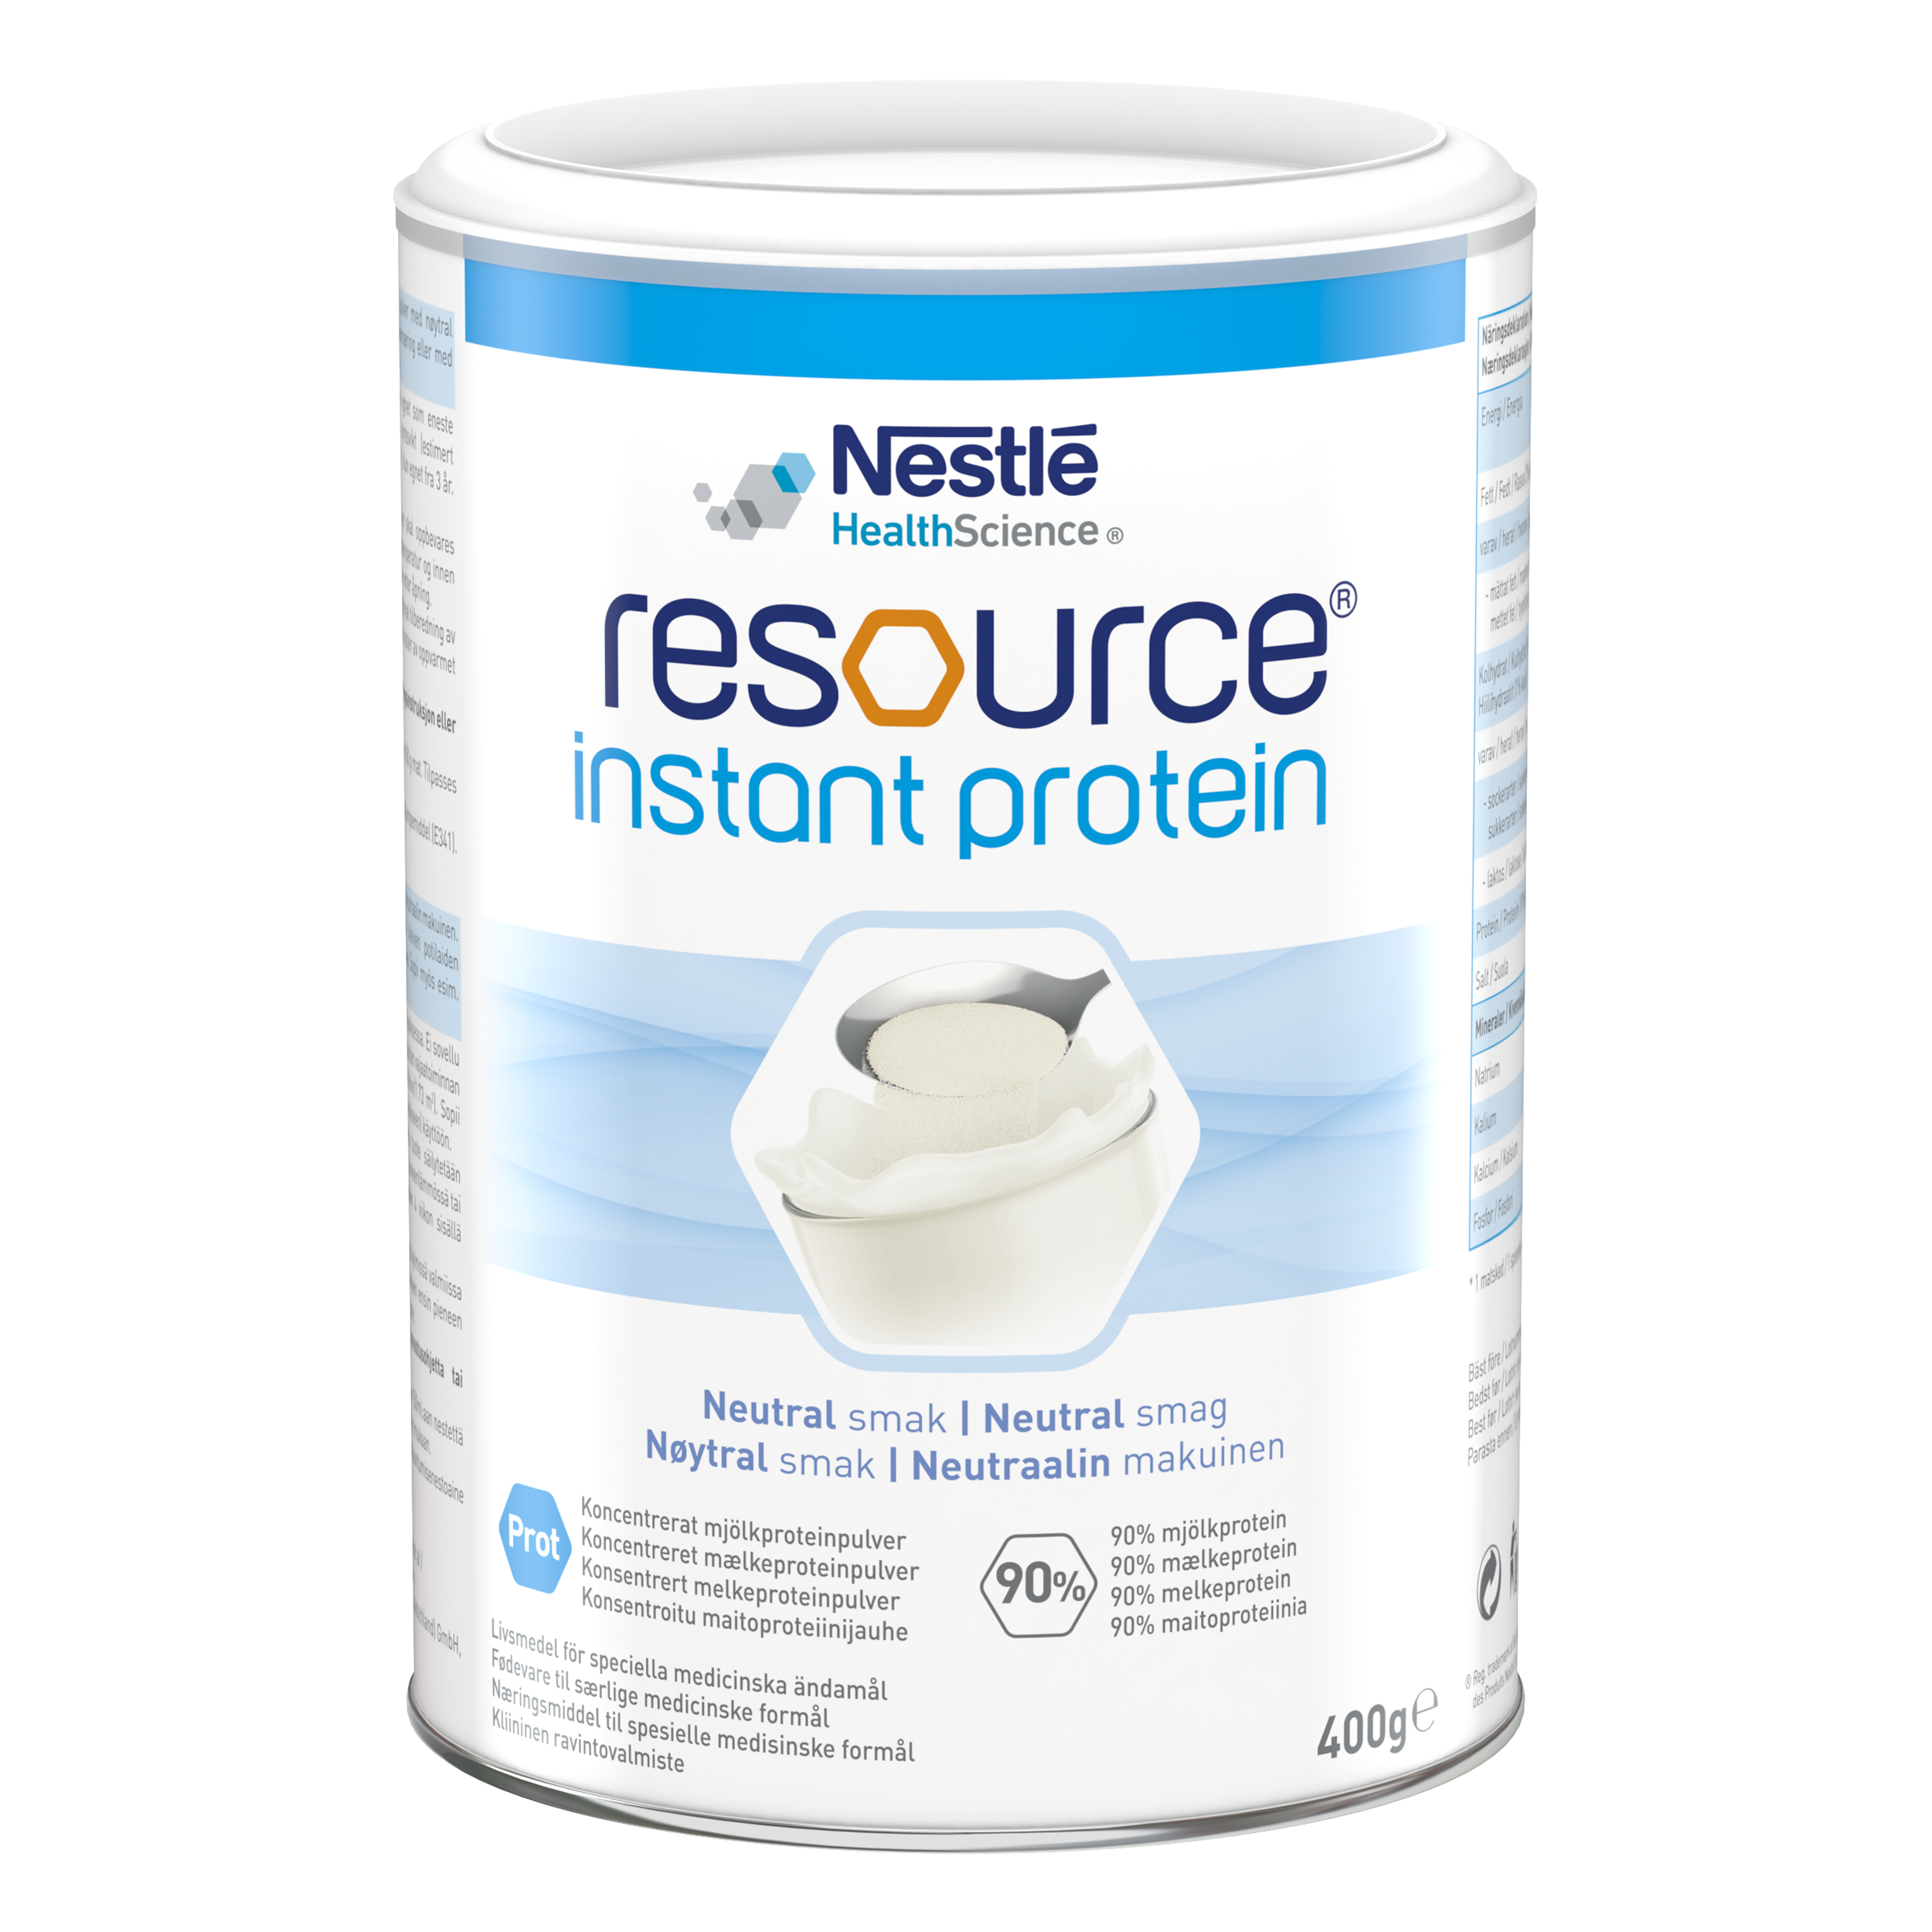 /resource-instant-protein